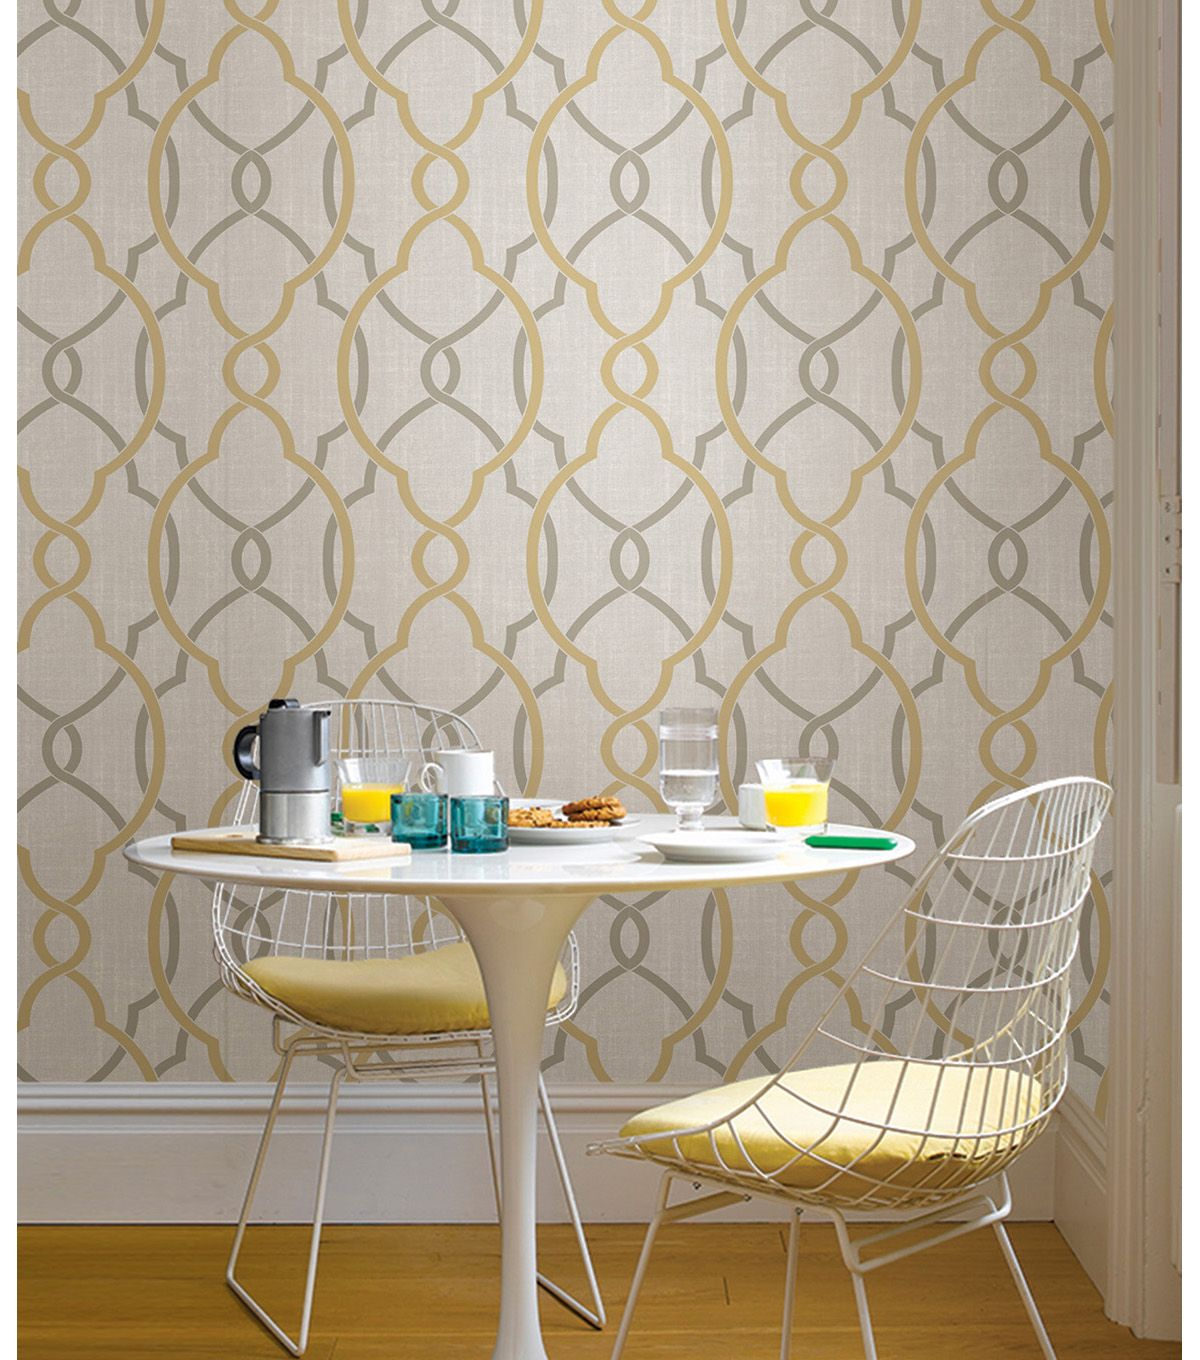 WallPops NuWallpaper Taupe/Yellow Sausalito Peel & Stick